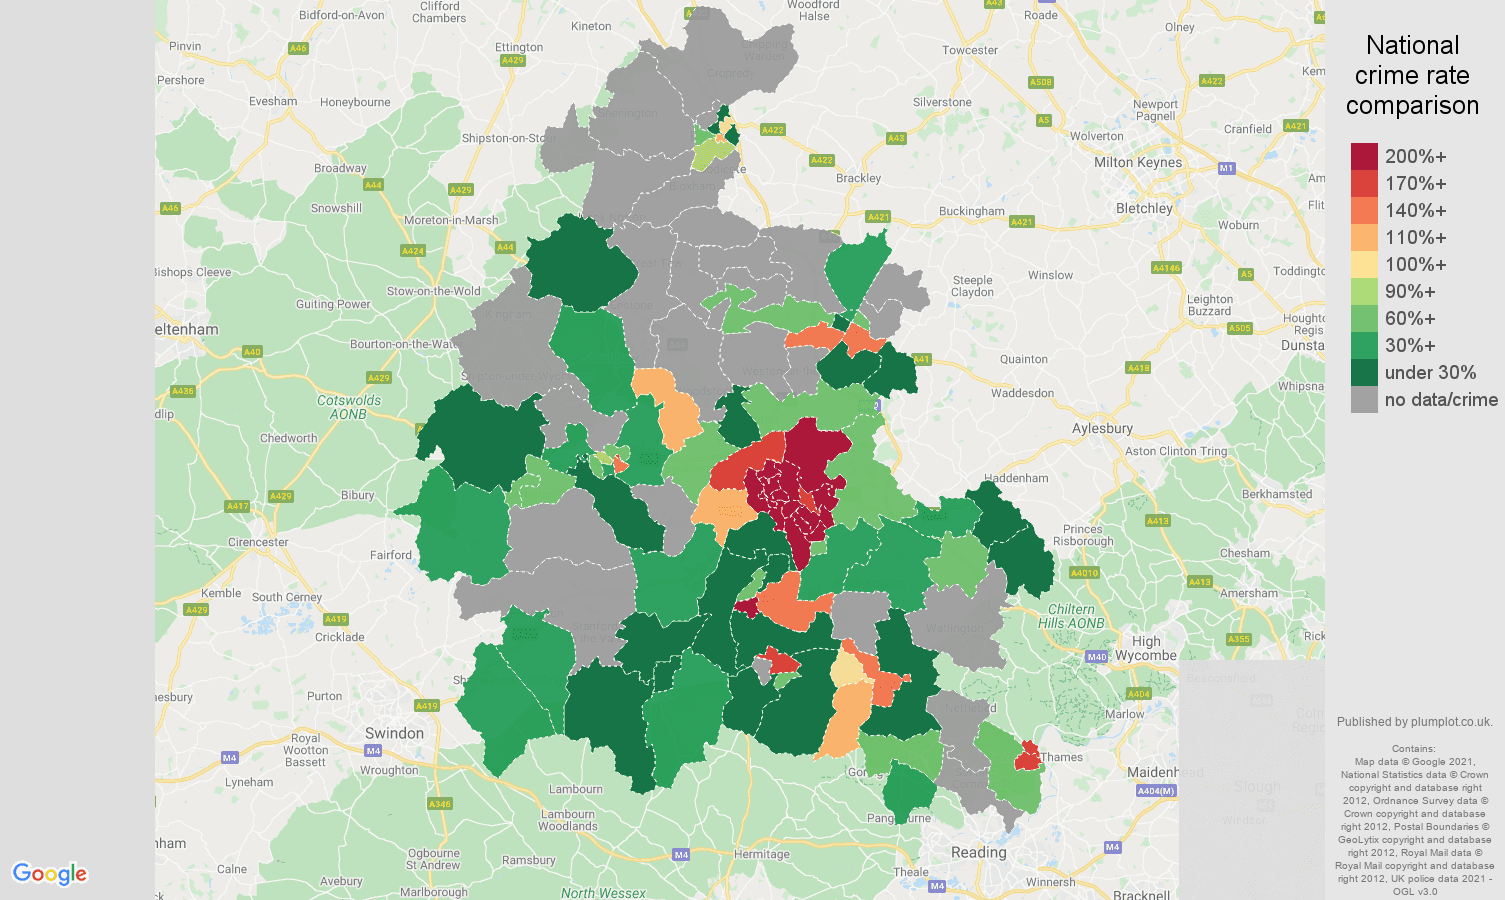 Oxfordshire bicycle theft crime rate comparison map